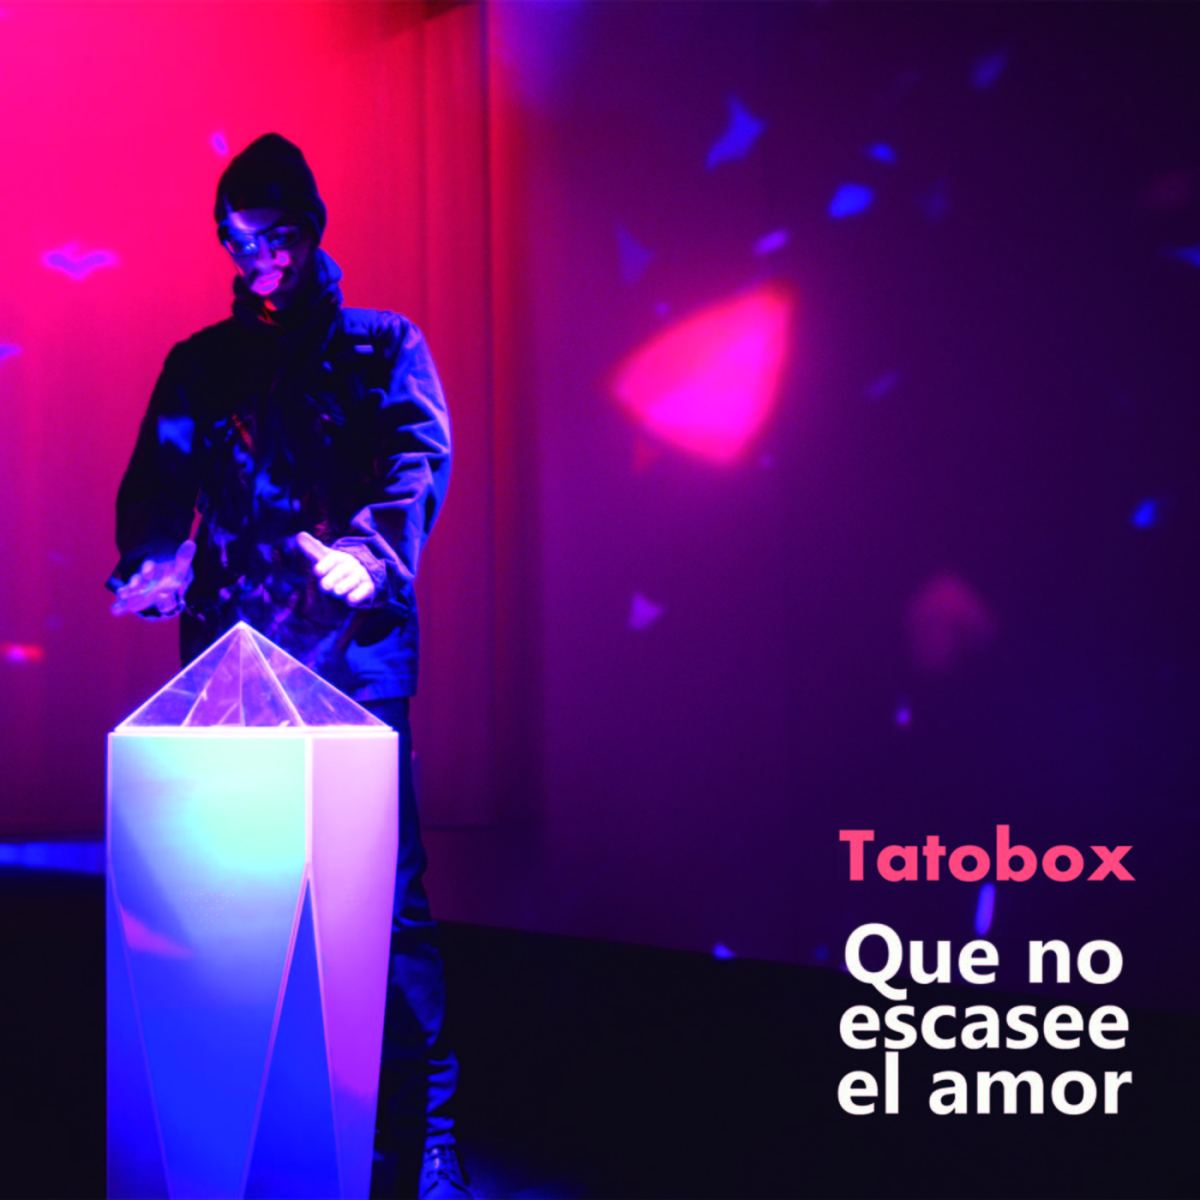 tatobox-que-no-escasee-el-amor